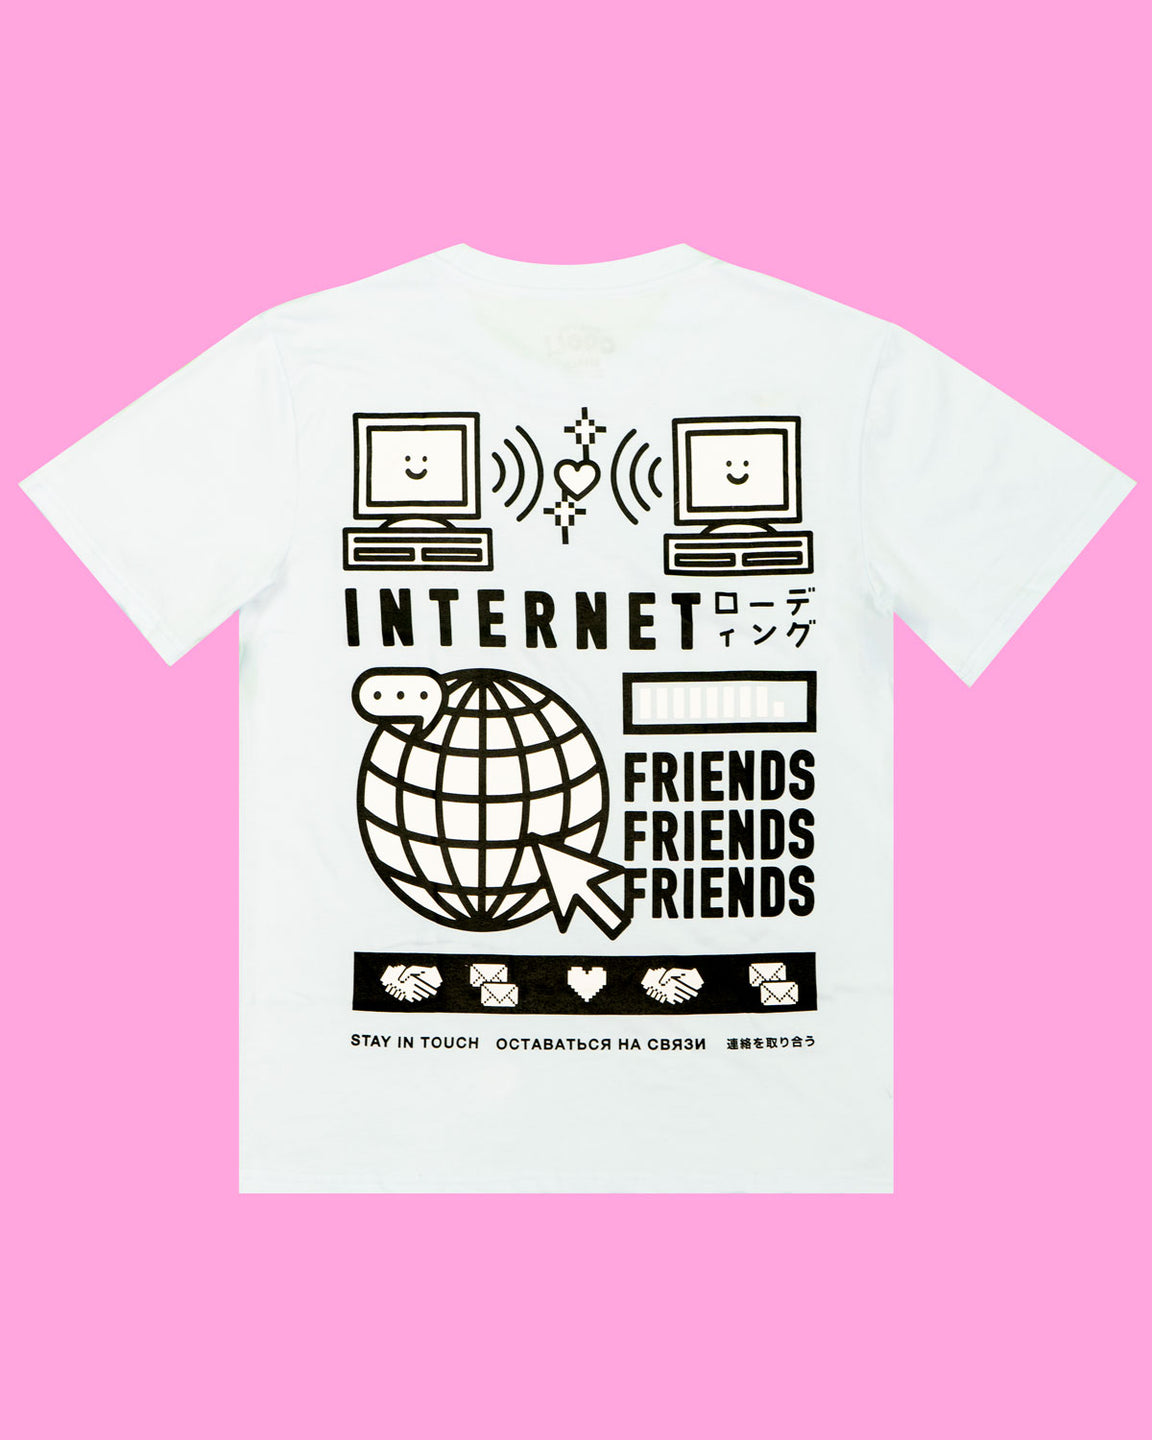 The Internet Friends Tee